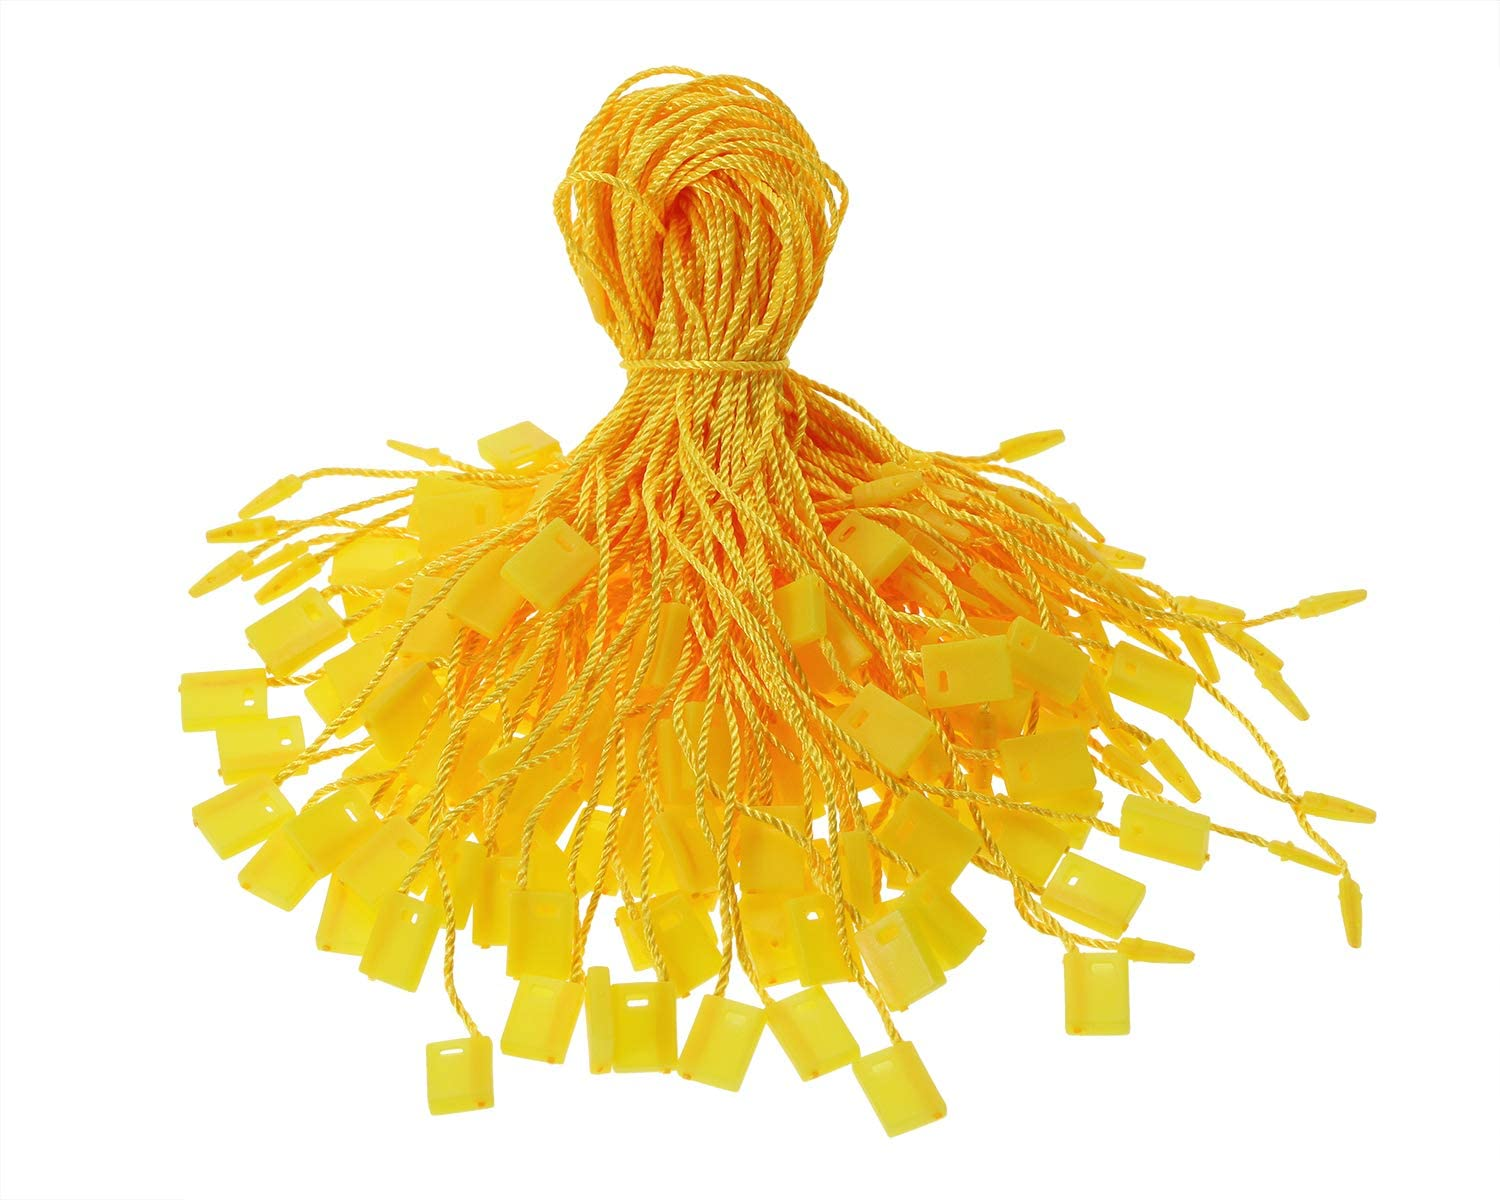 Tupalizy 7 Inch Nylon Hang Tag String for Clothes Gift Bags Price Tags Shoes Snap Lock Pin Loop Fastener Hook Ties Tag Rope for Belts Pocket Squares Luggage Label Attachment, 120PCS (Golden Yellow)